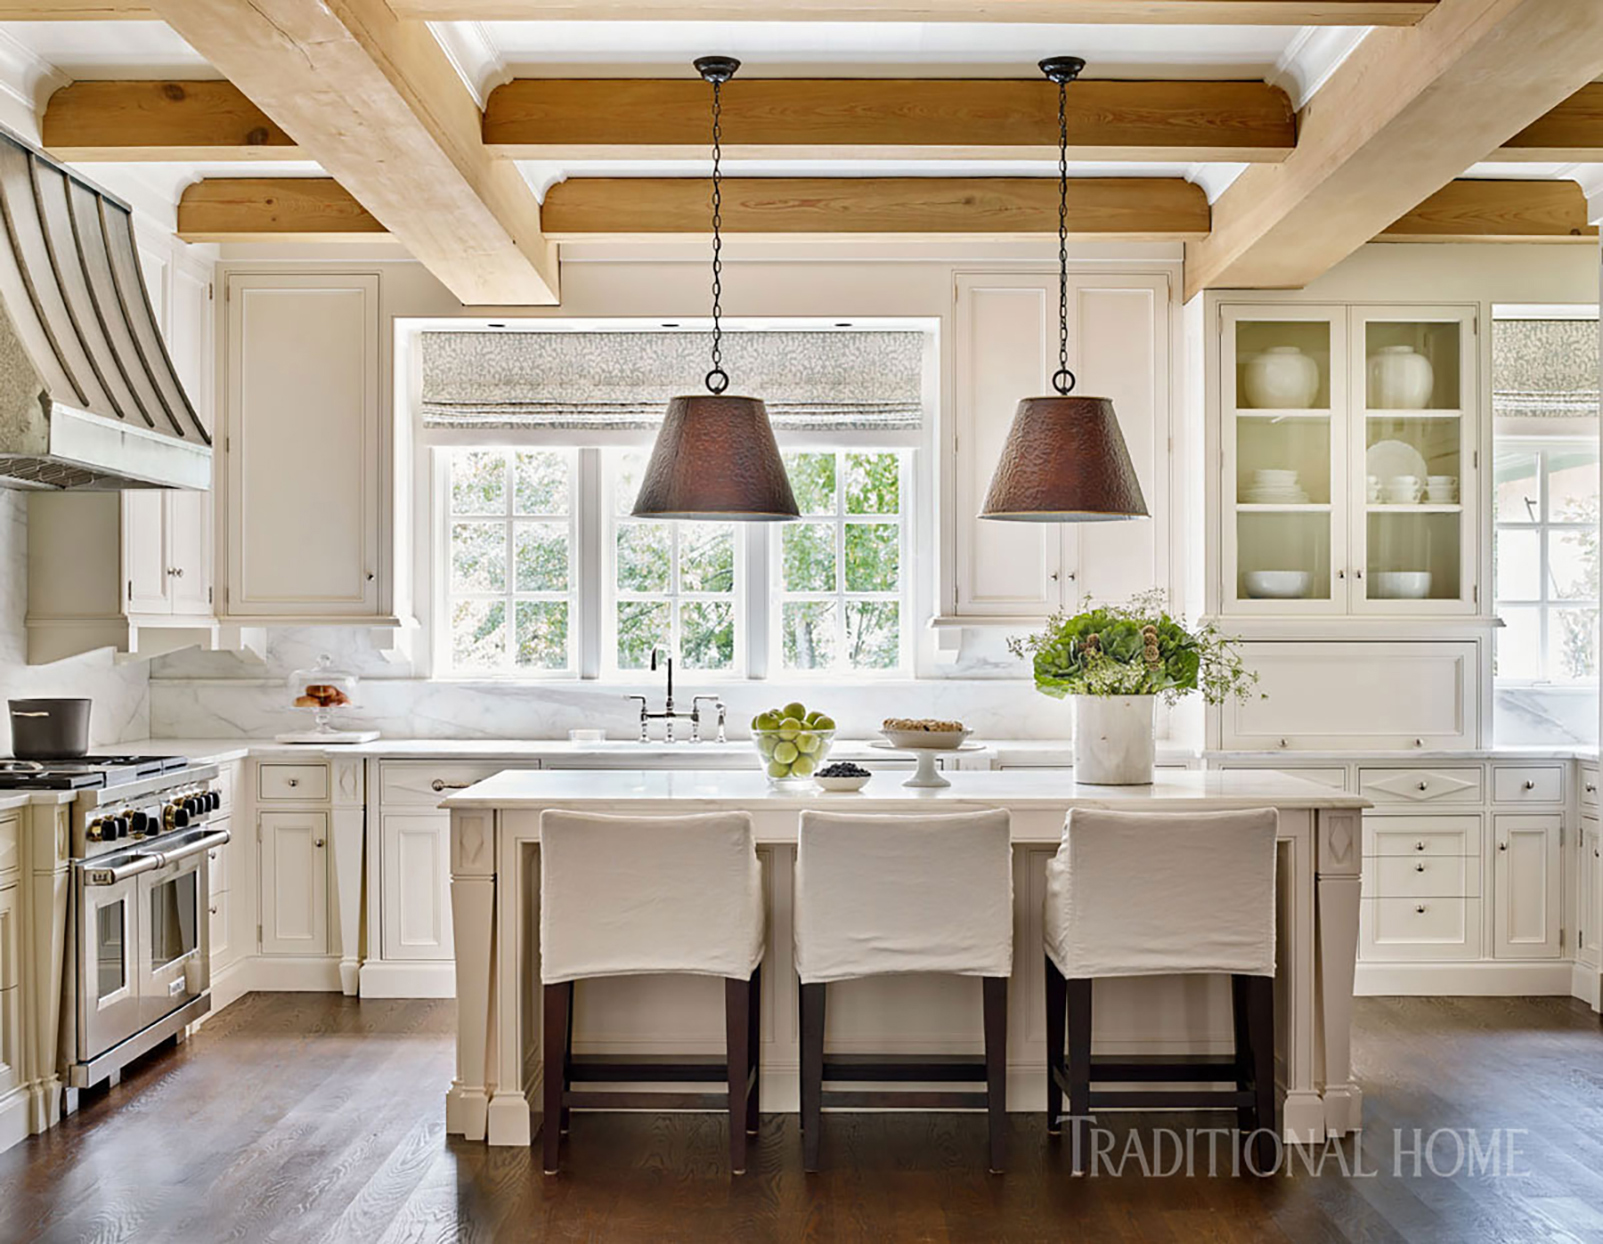 spacious kitchen with formal island